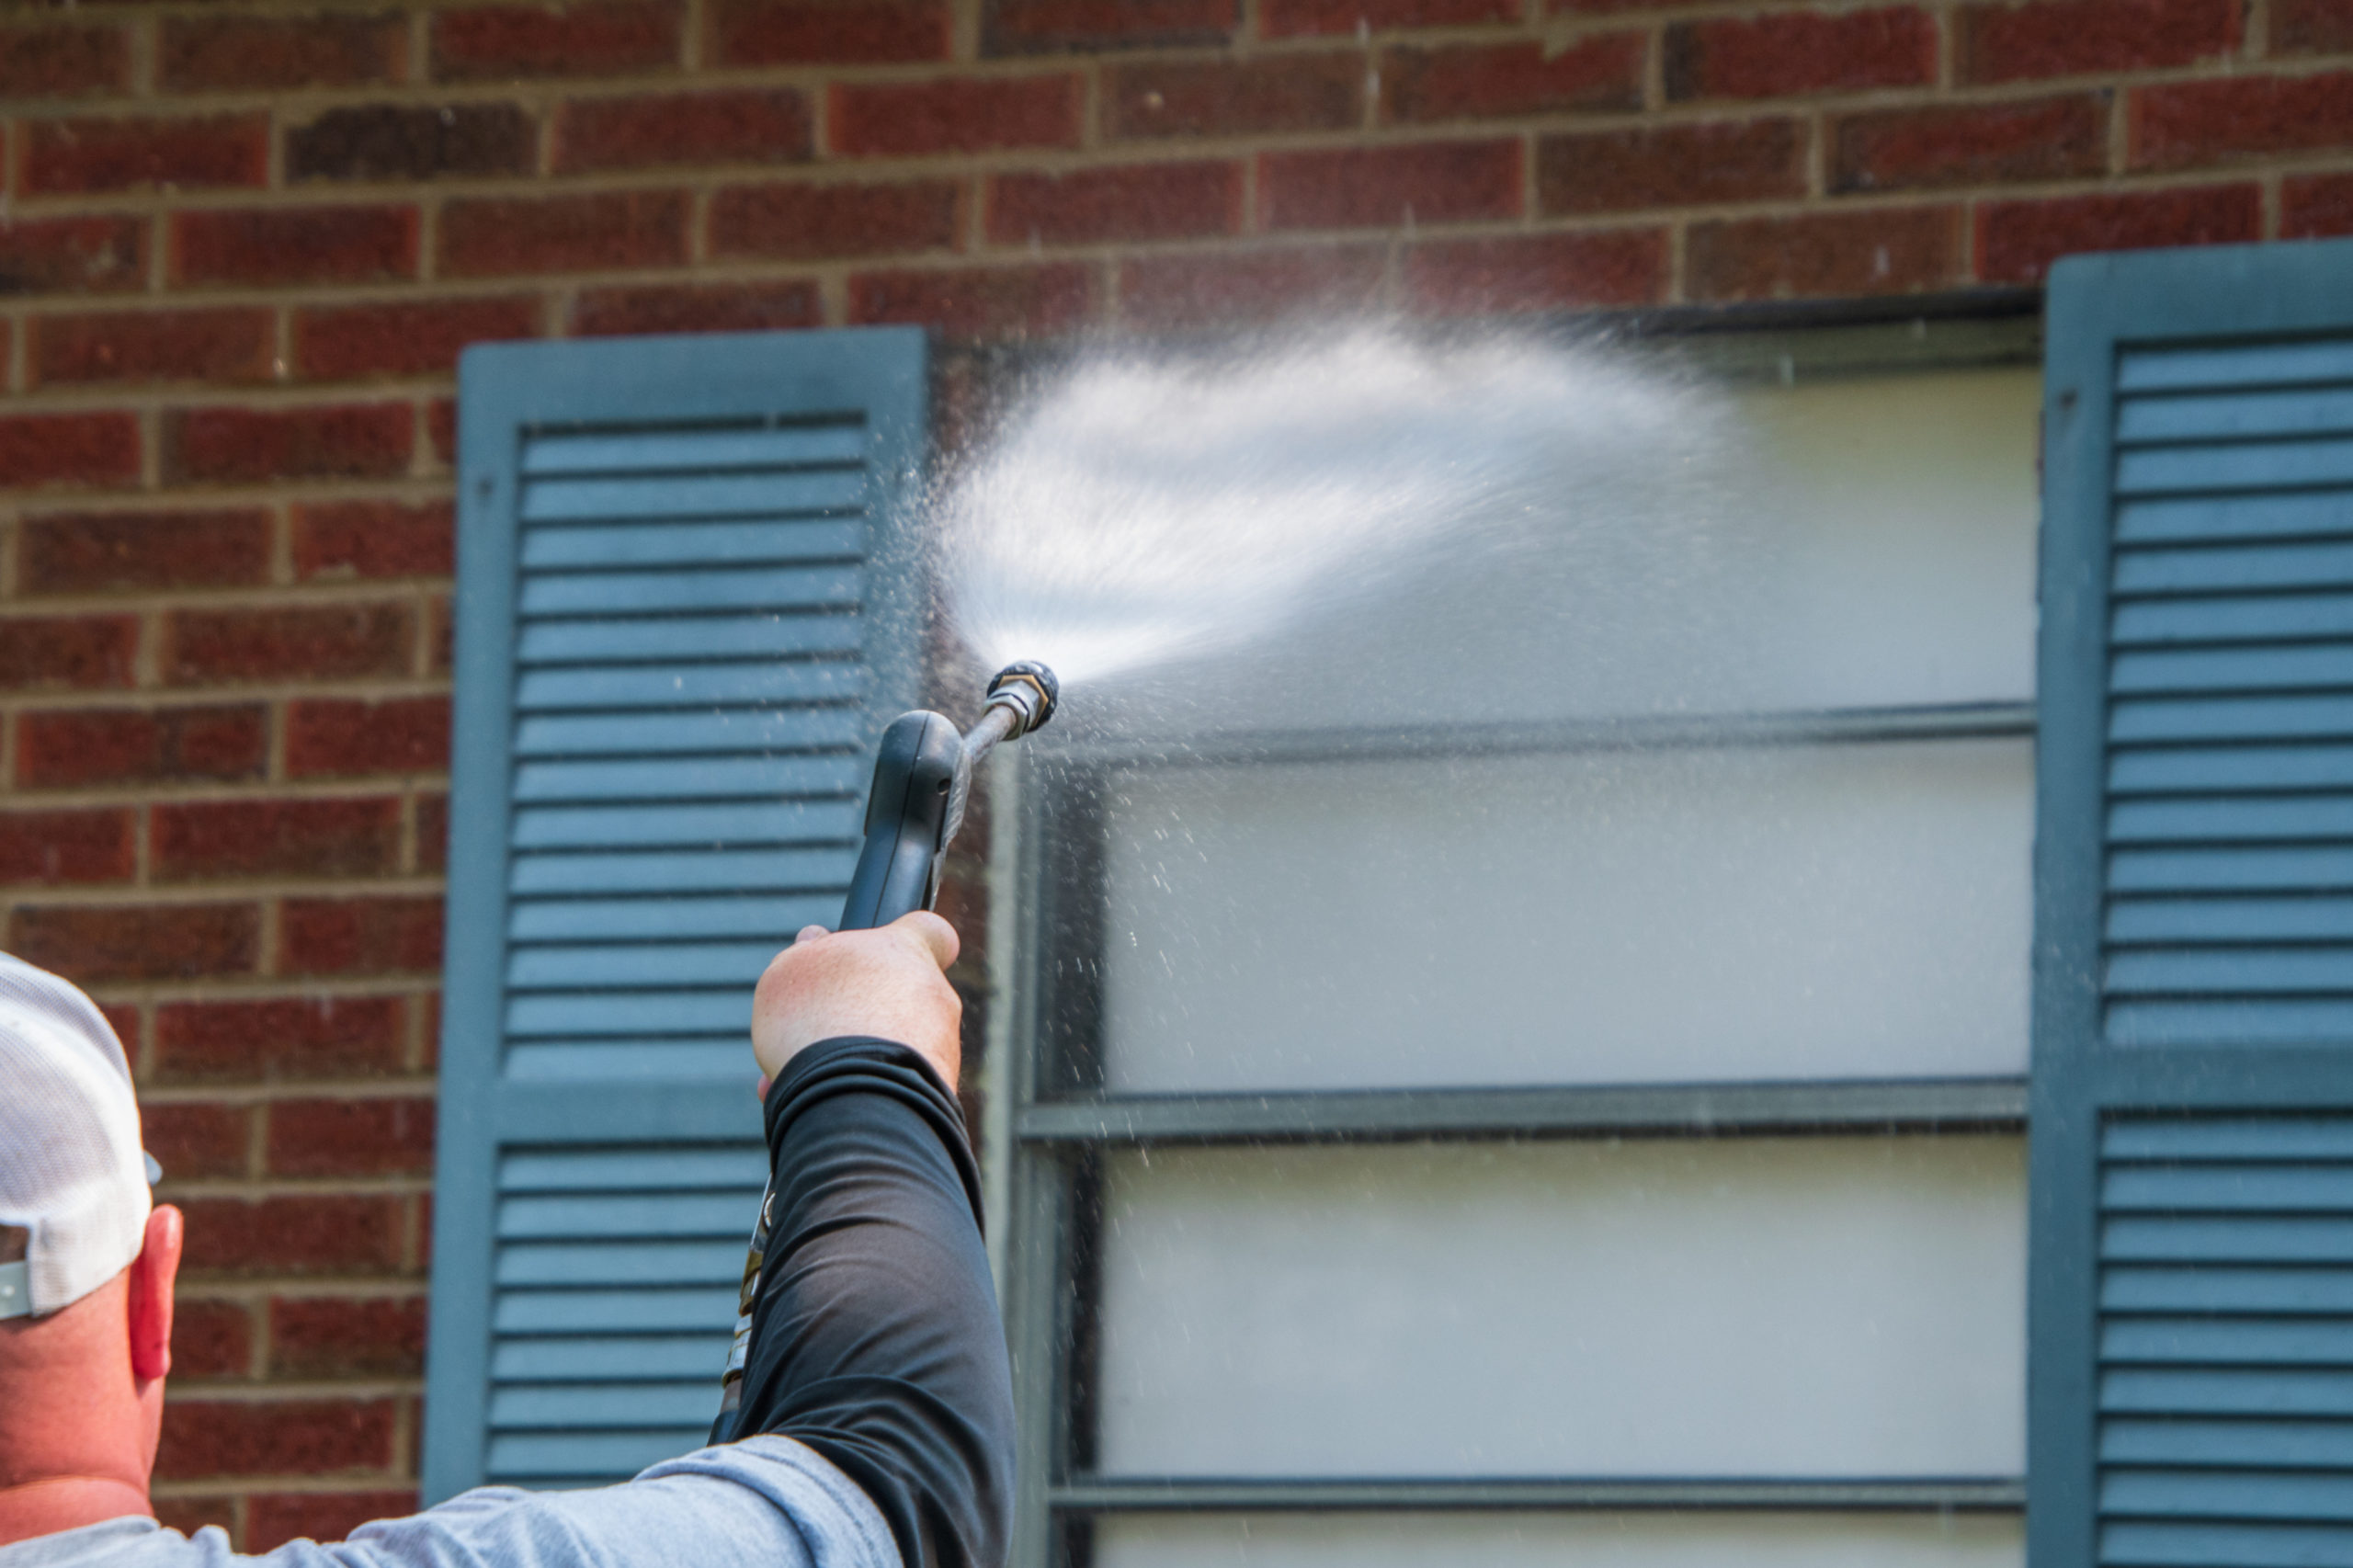 Arm and hand holding a sprayer aimed at a window that has a blue shutter on a red brick wall. The nozzle is spraying a wide water on the window